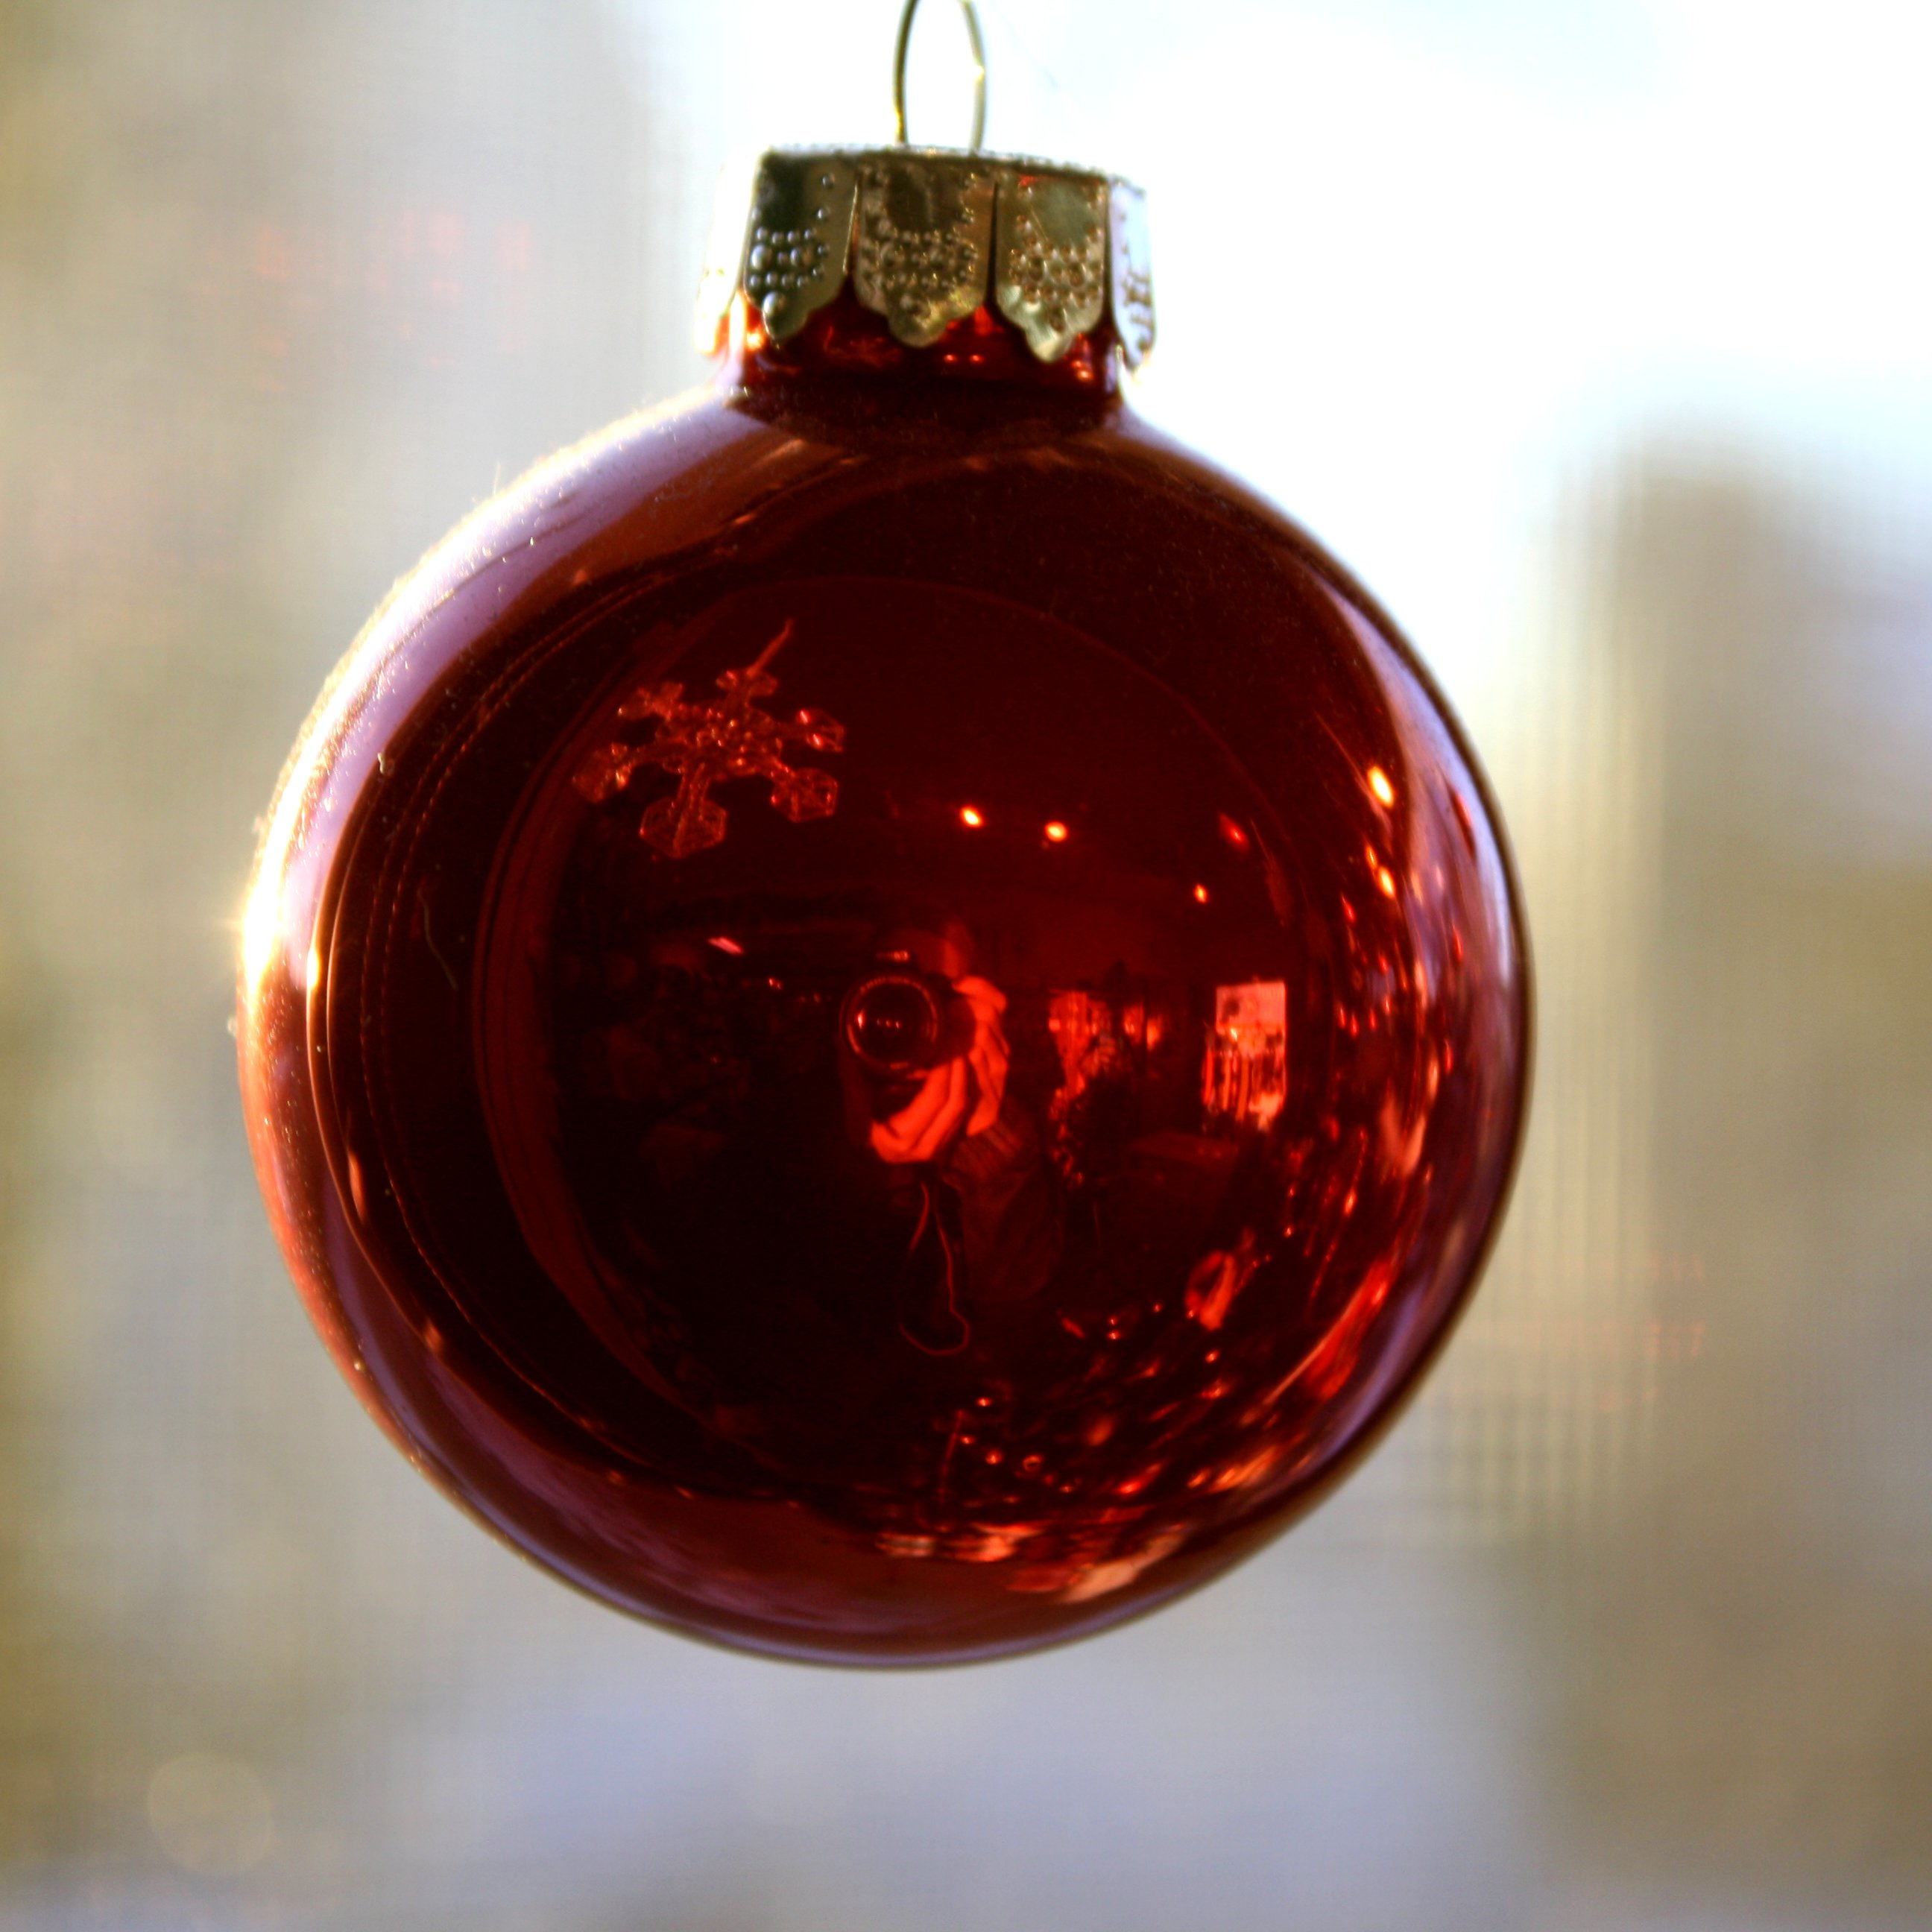 Red christmas ball ornament picture free photograph